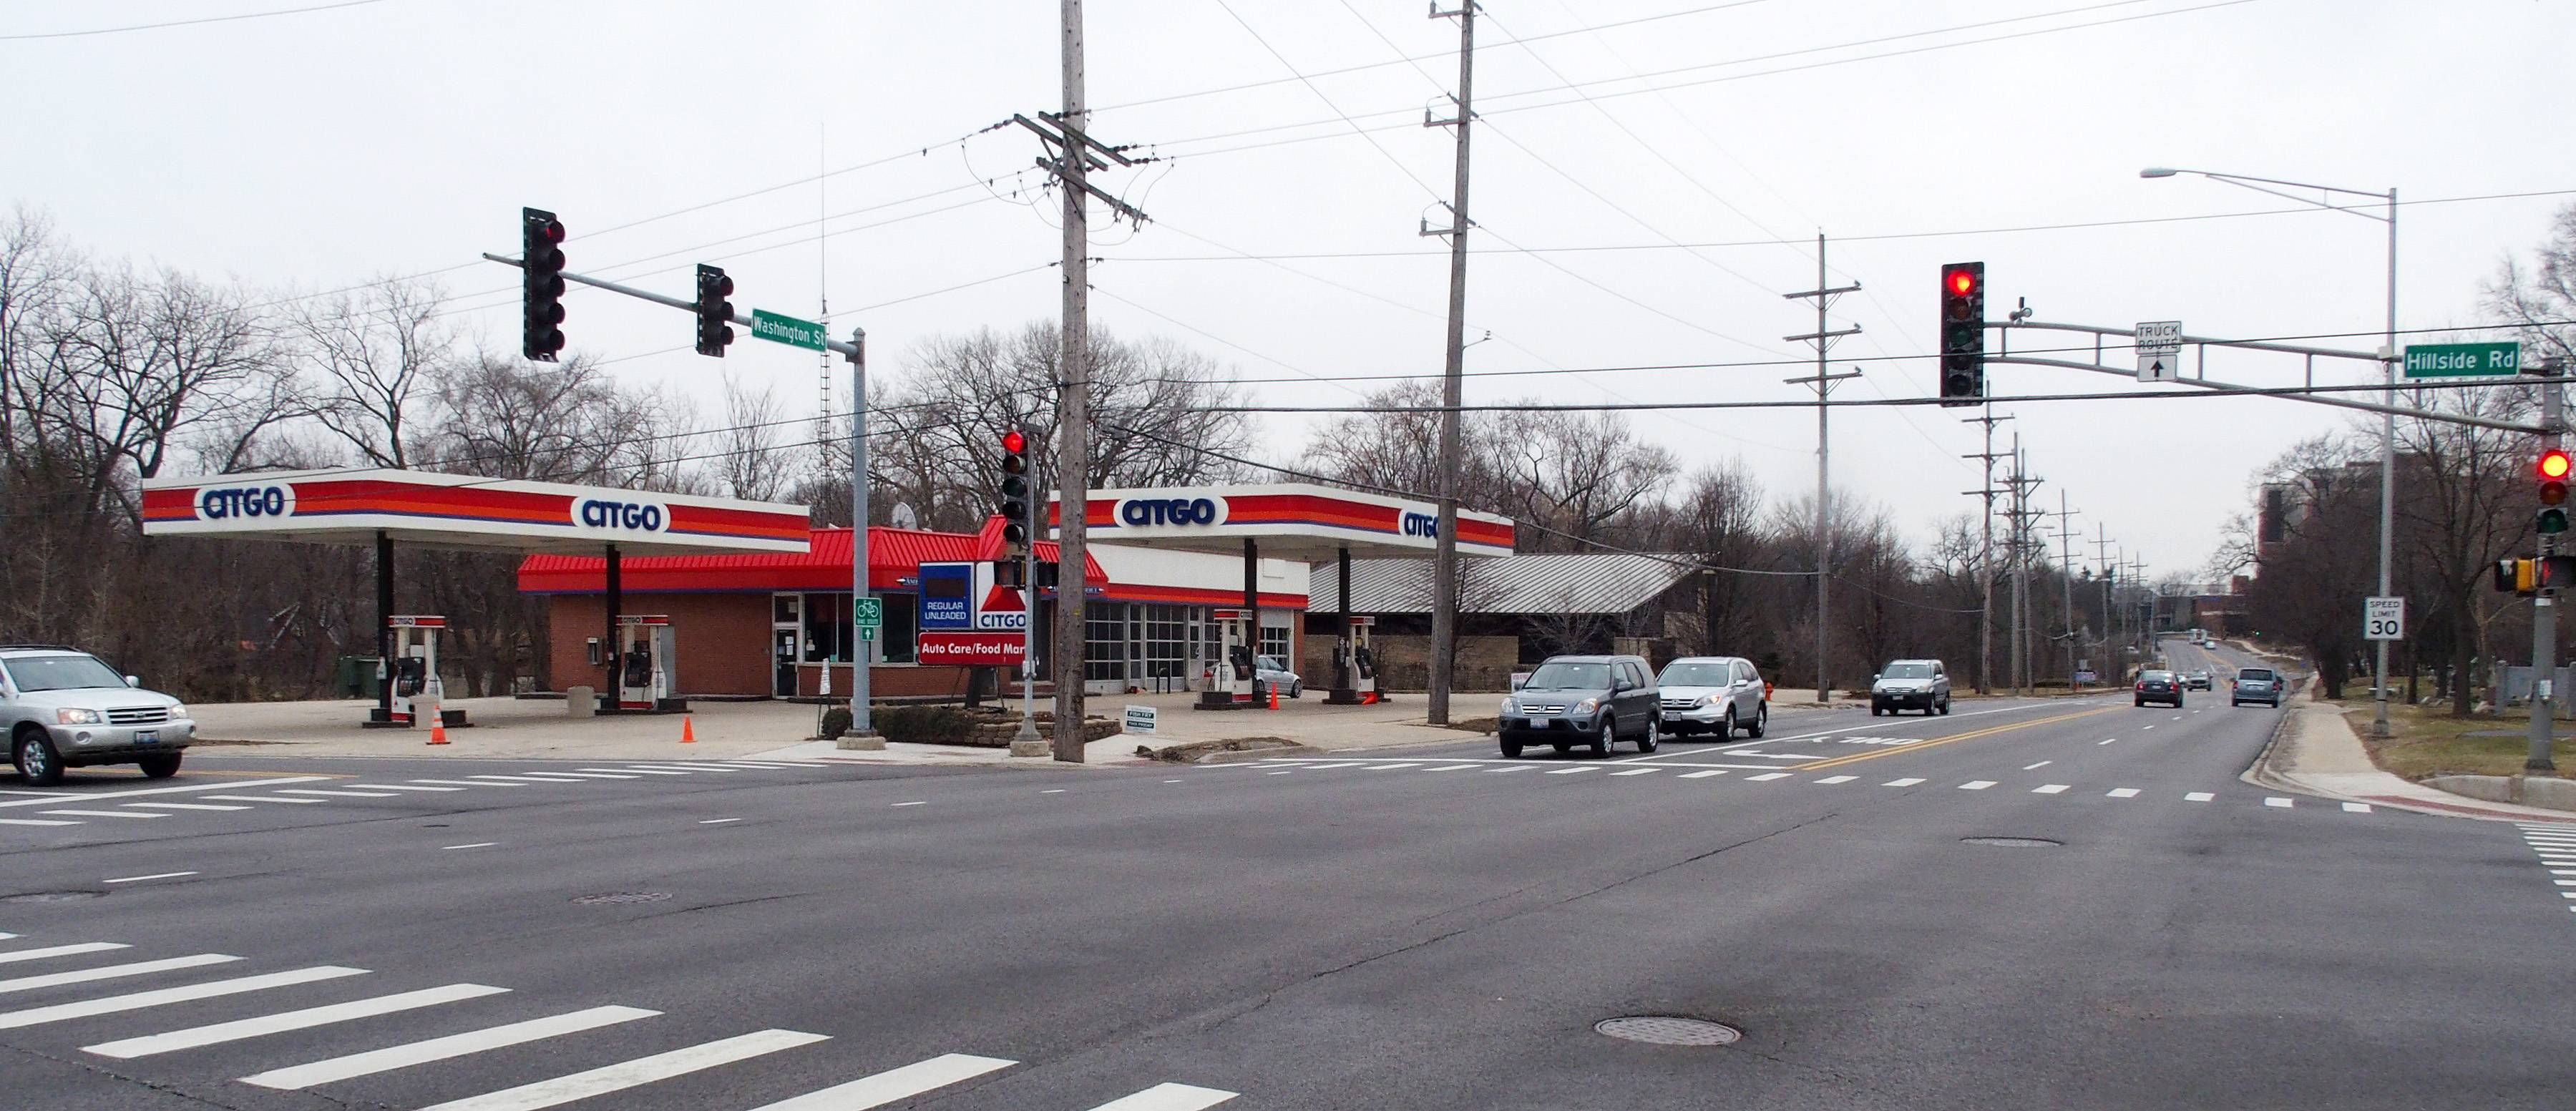 Naperville's planning and zoning commission has recommended the denial of a Dunkin' Donuts to anchor a new retail building proposed to replace the Citgo station at the southeast corner of Washington Street and Hillside Road.